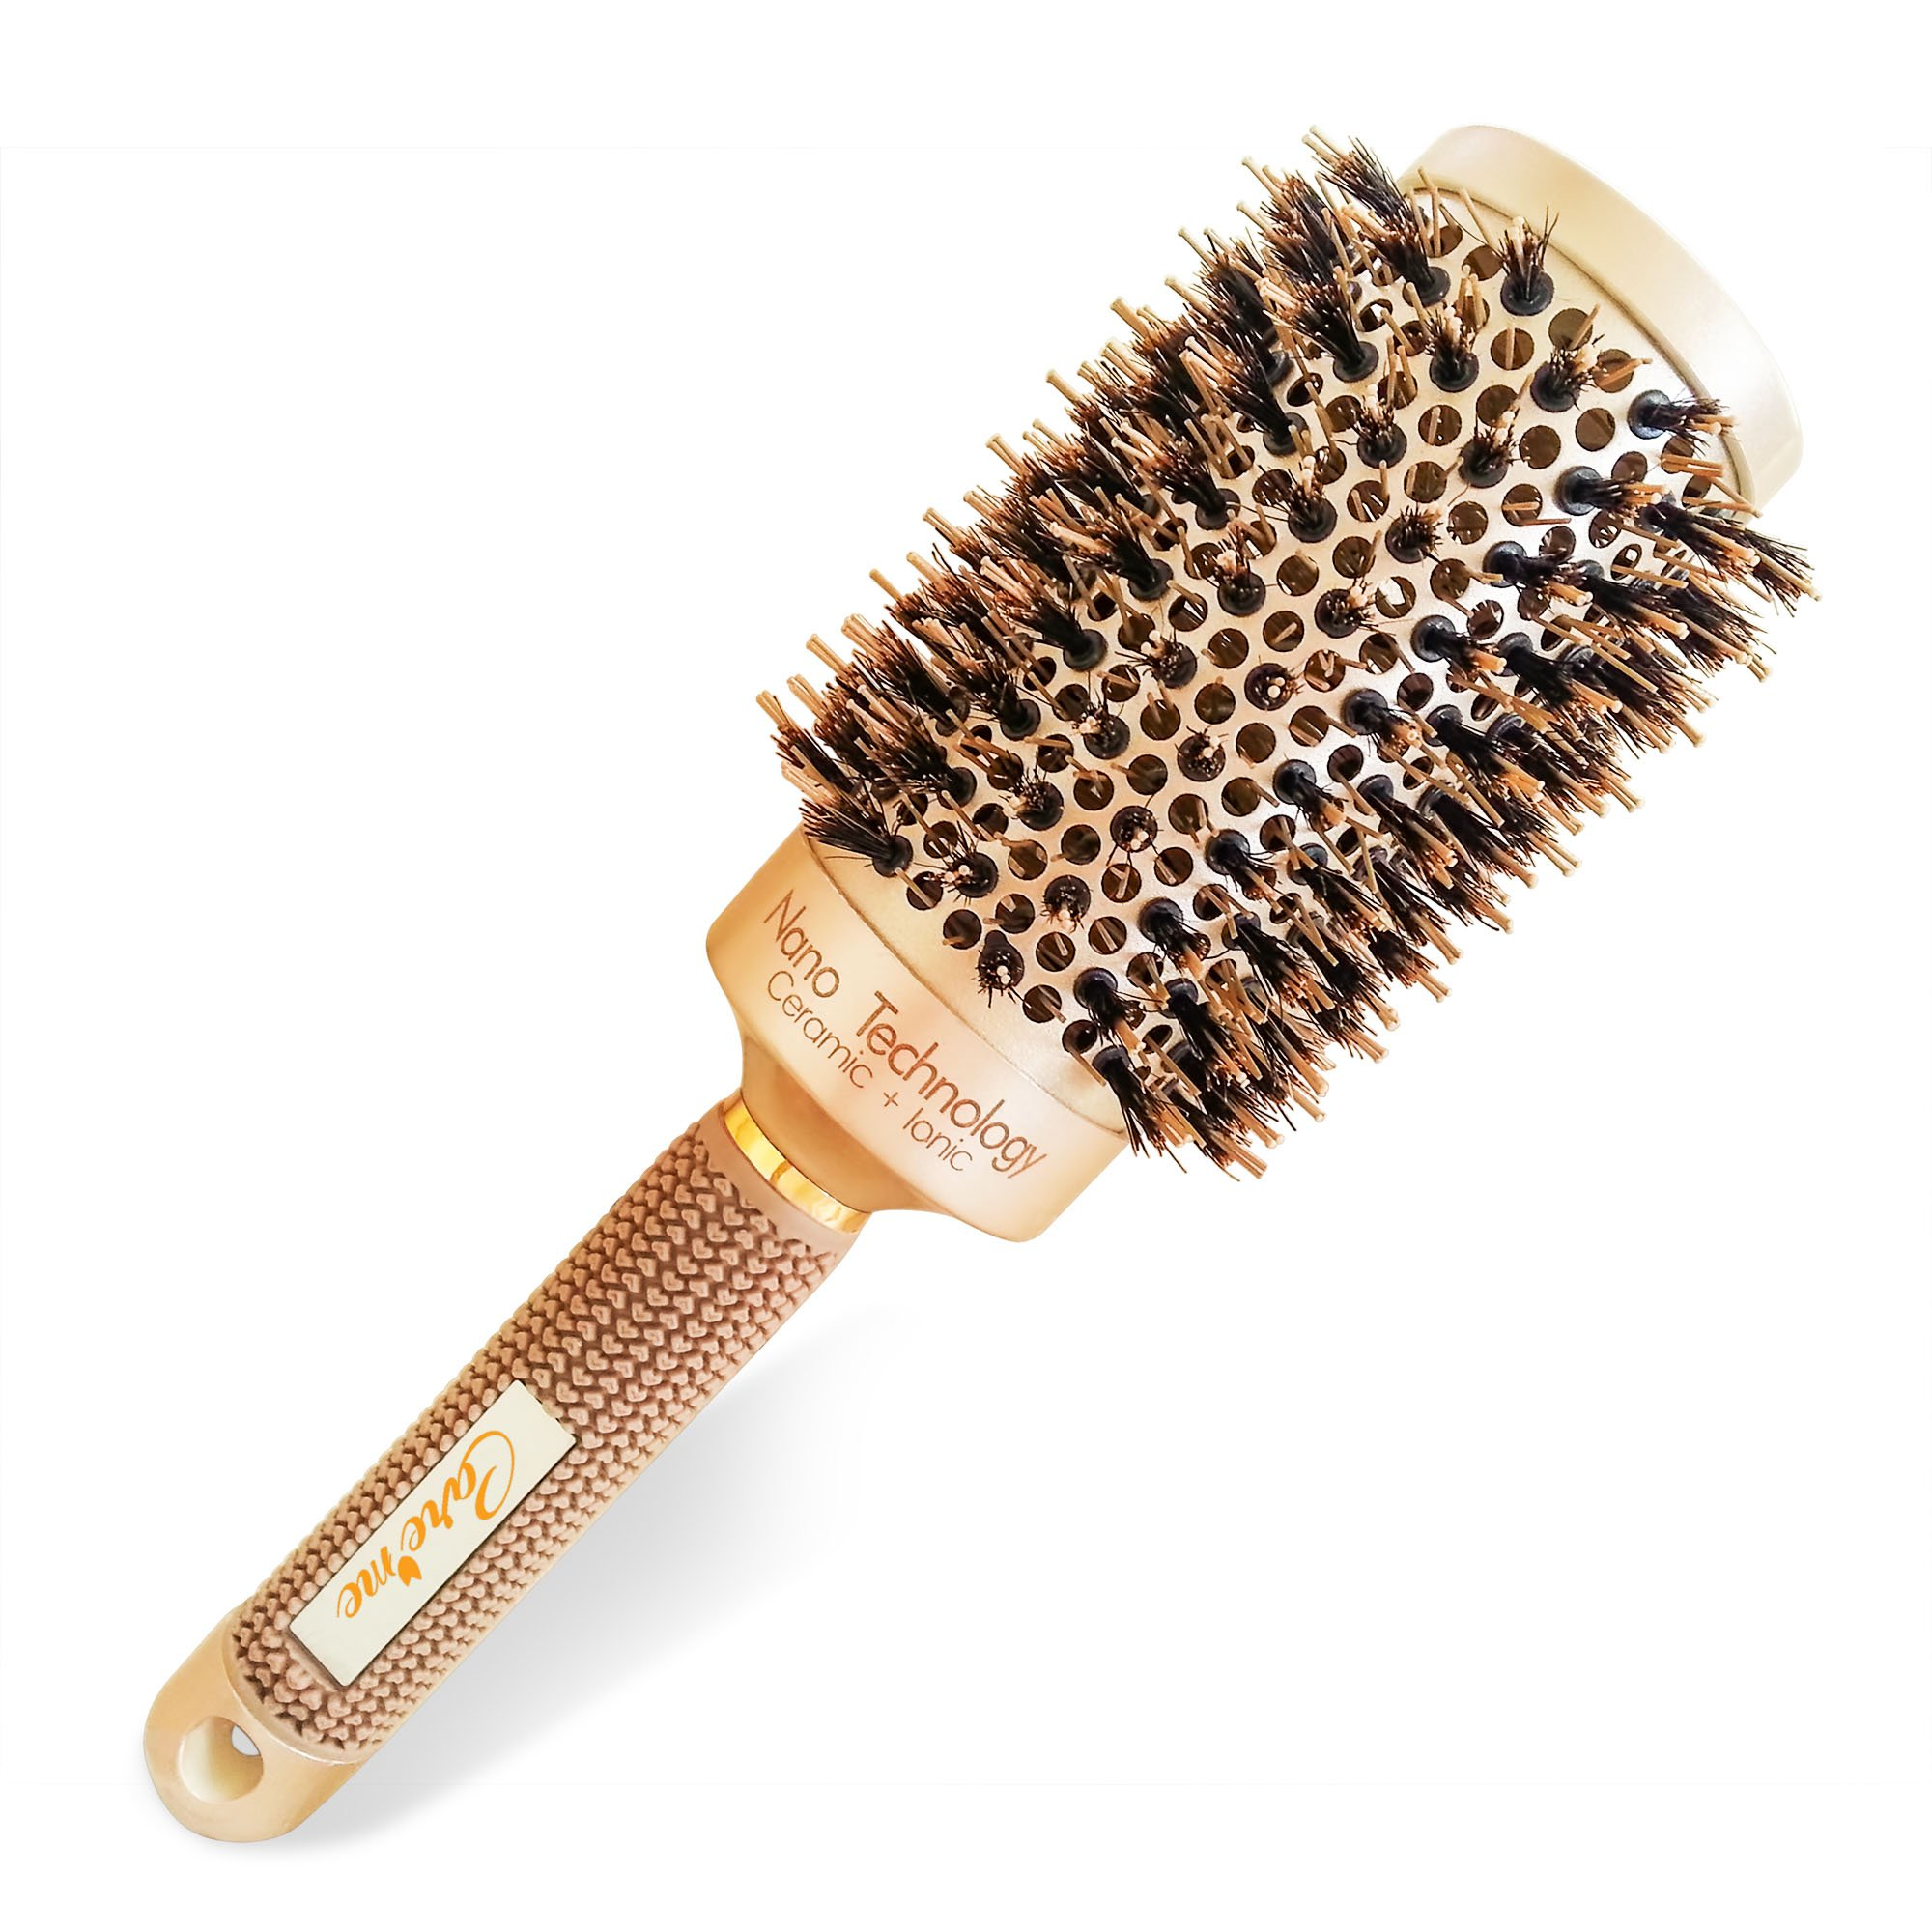 Blow Dry Round Hair Brush with Natural Boar Bristles for Blow-drying | Straightening - Best Roller Brush for Long hair or Want Straight | Wavy Smooth Hair (2'')